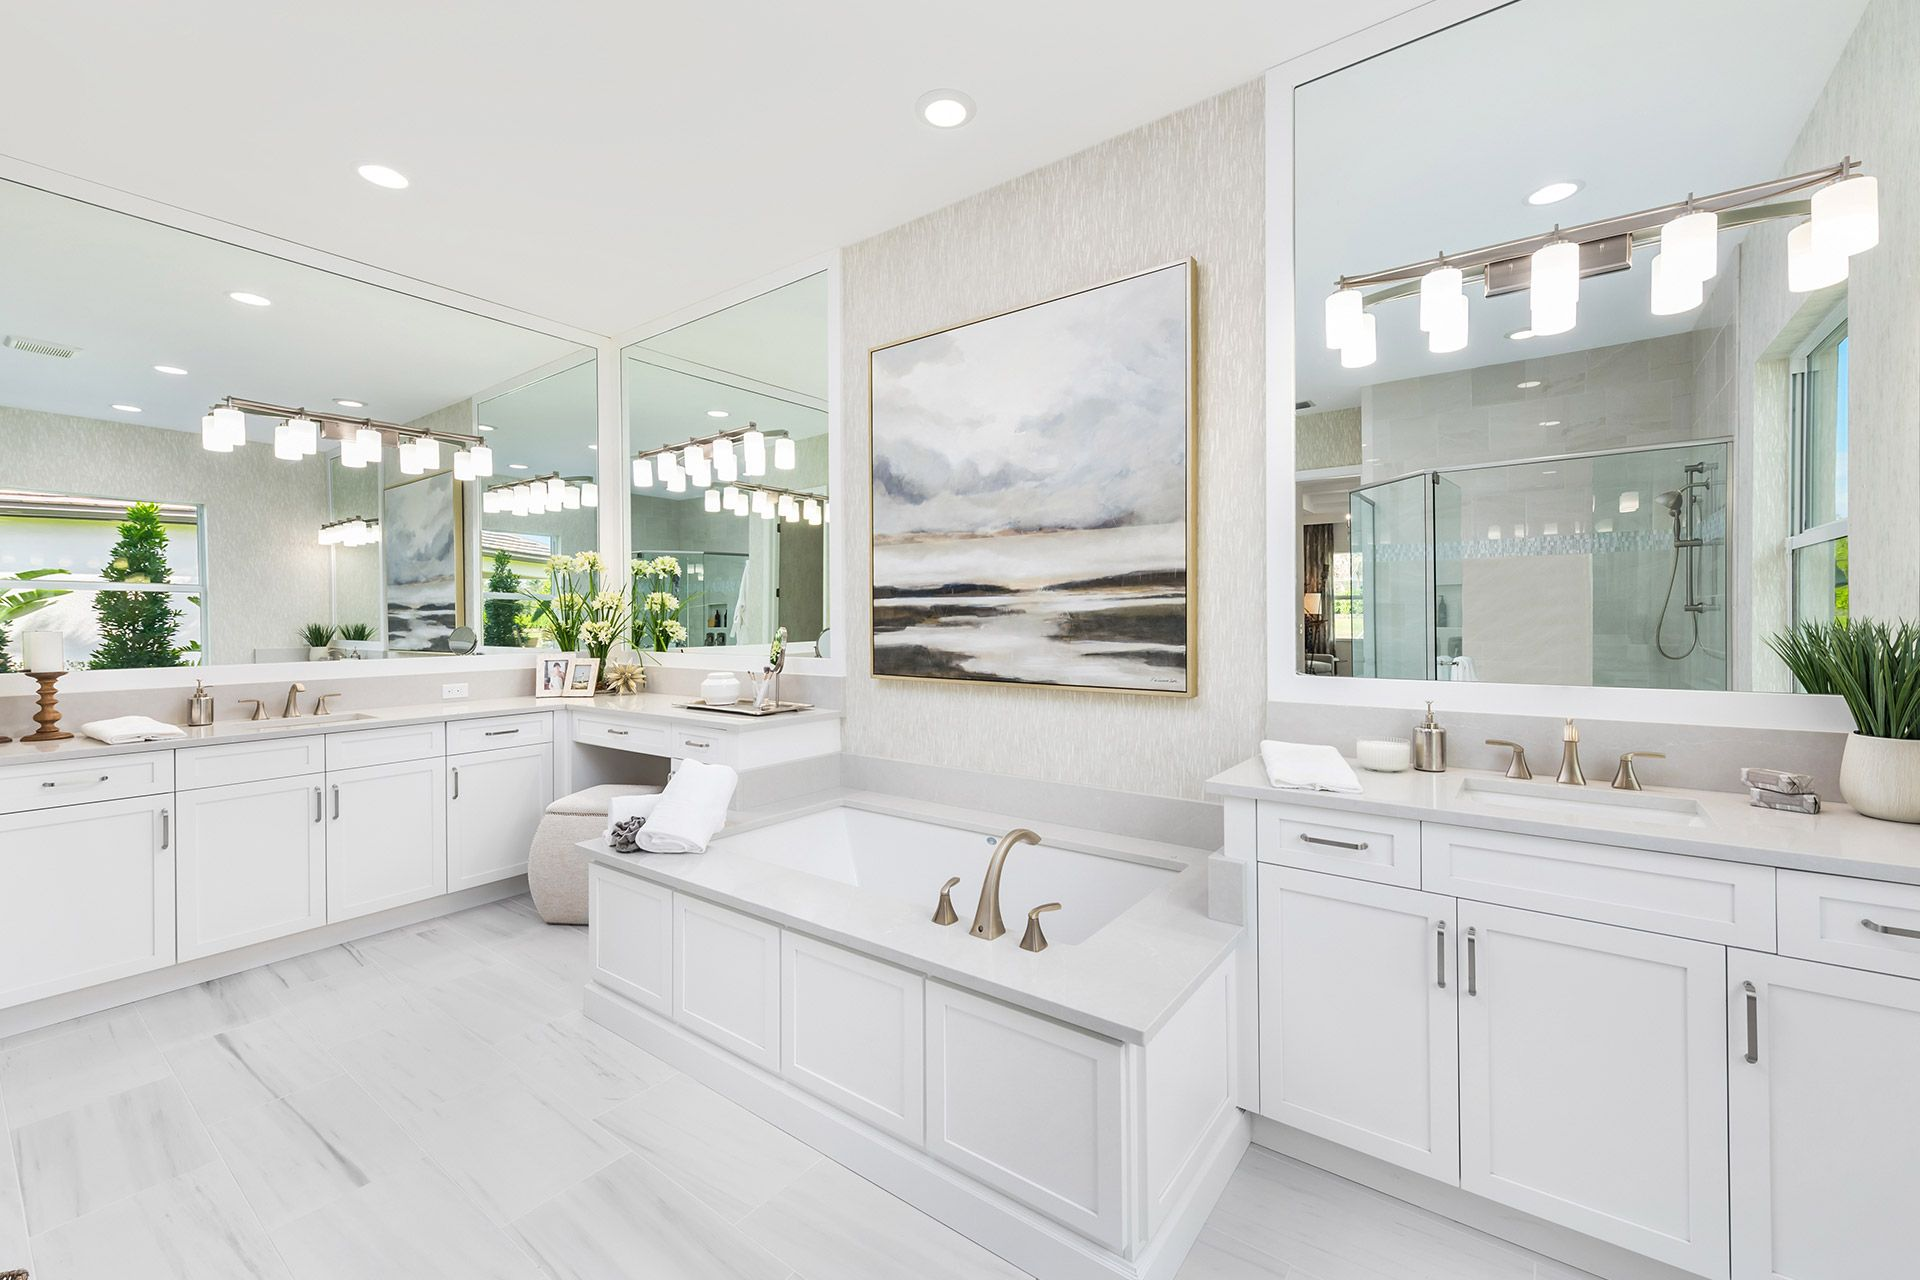 Bathroom featured in the Sanibel By GL Homes in Naples, FL